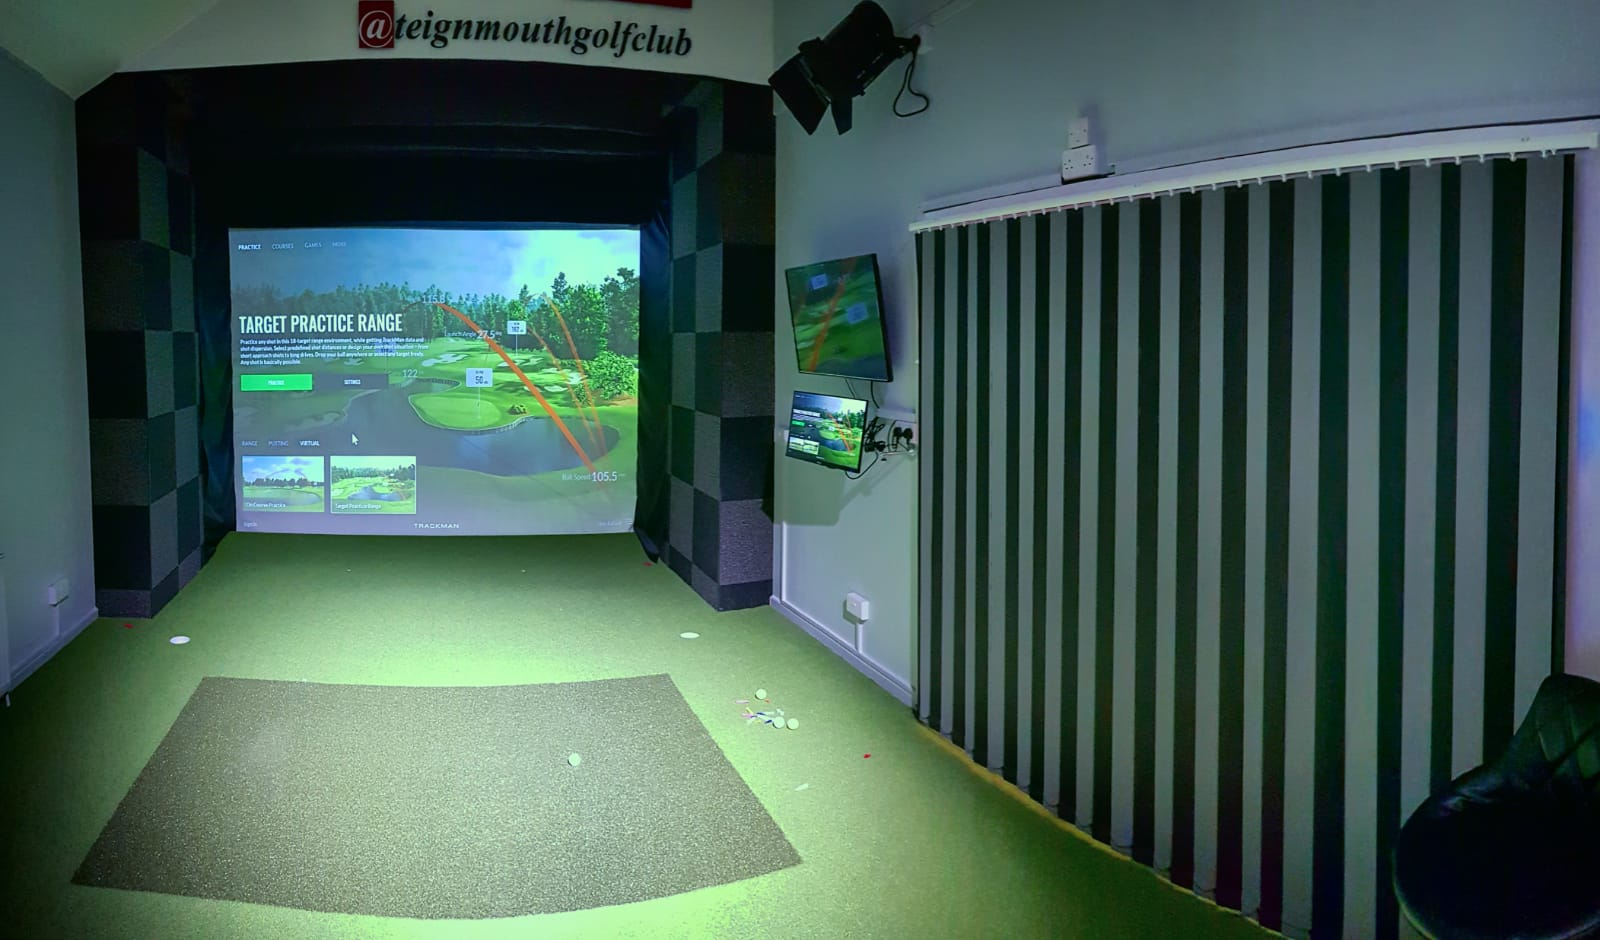 Teignmouth Golf Club Featured Image